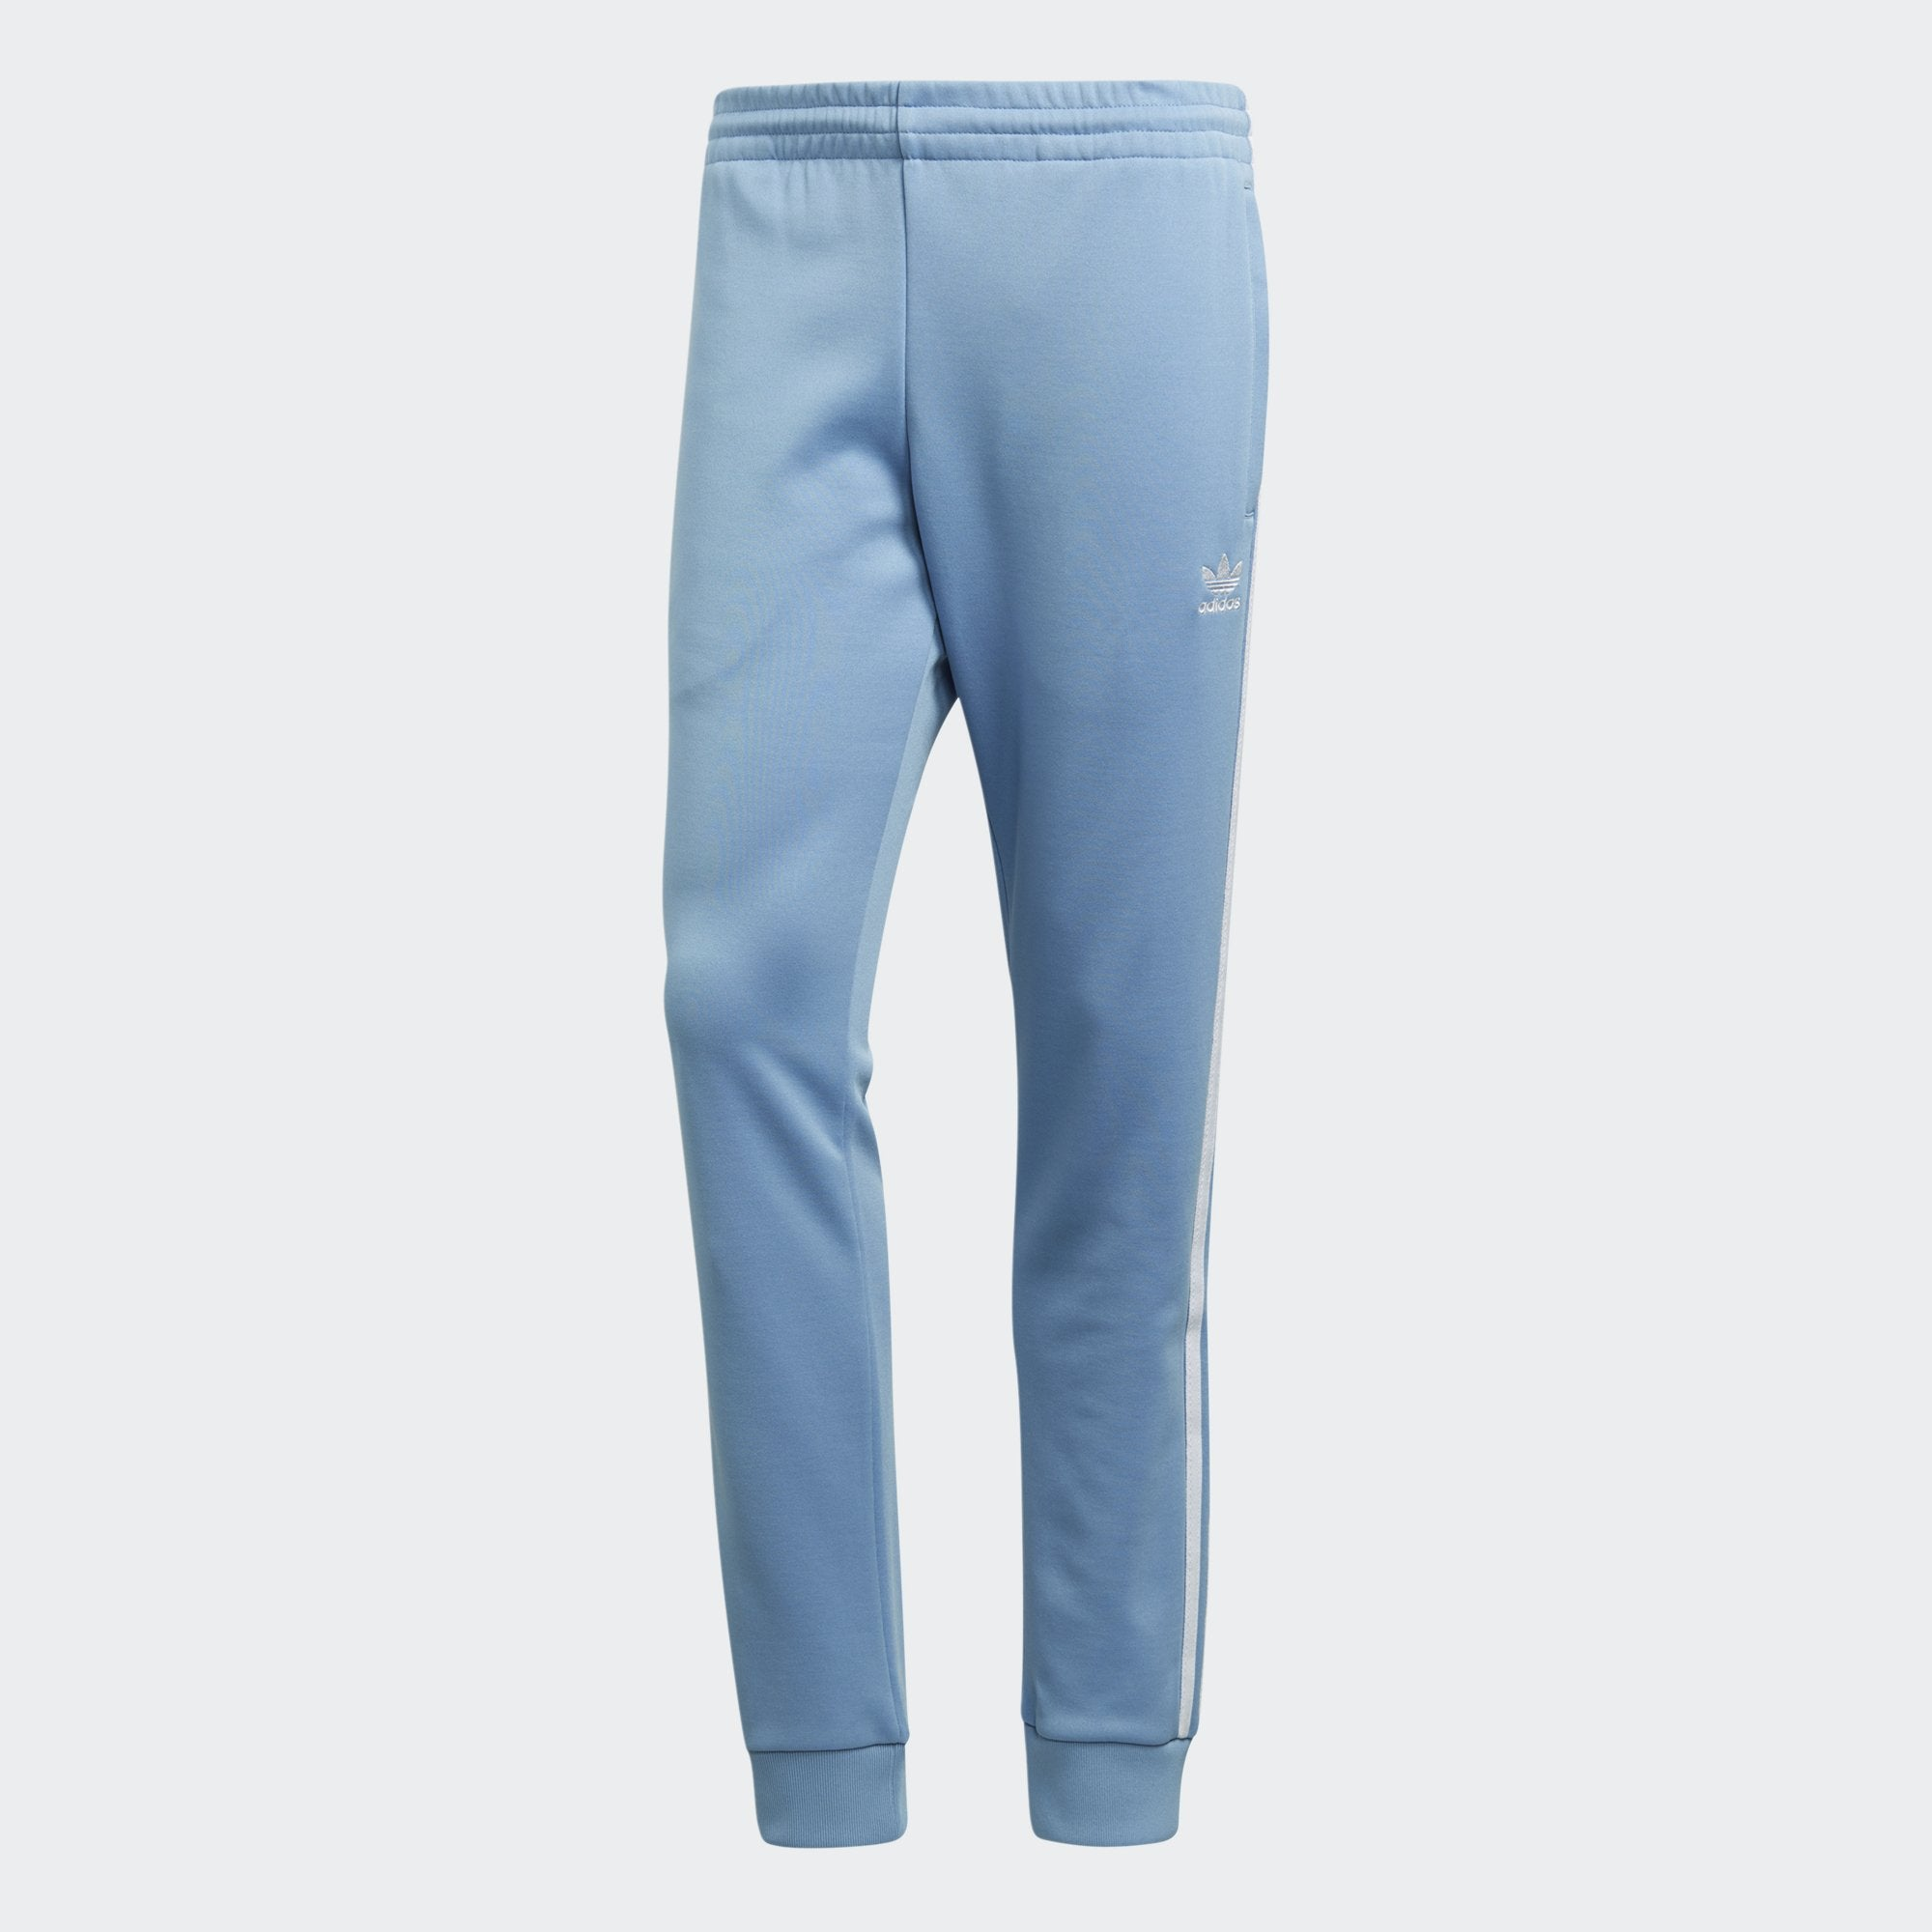 54f417cff4e adidas SST Track Pants Ash Blue CW1277 | Chicago City Sports